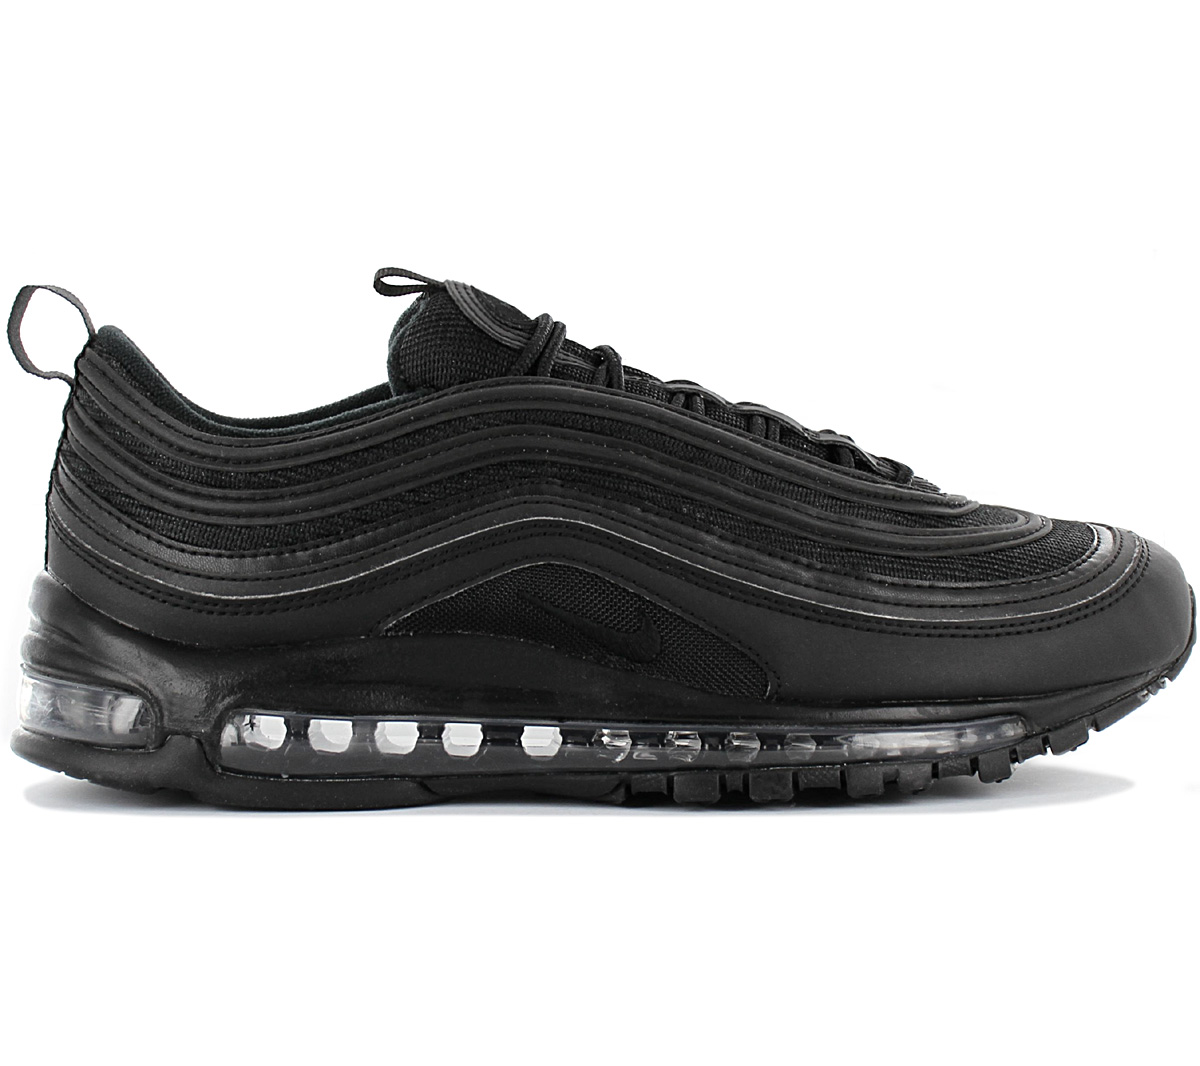 Details about Nike air max 97 Black Men's Premium Sneaker BQ4567 001 Shoes Black Trainers